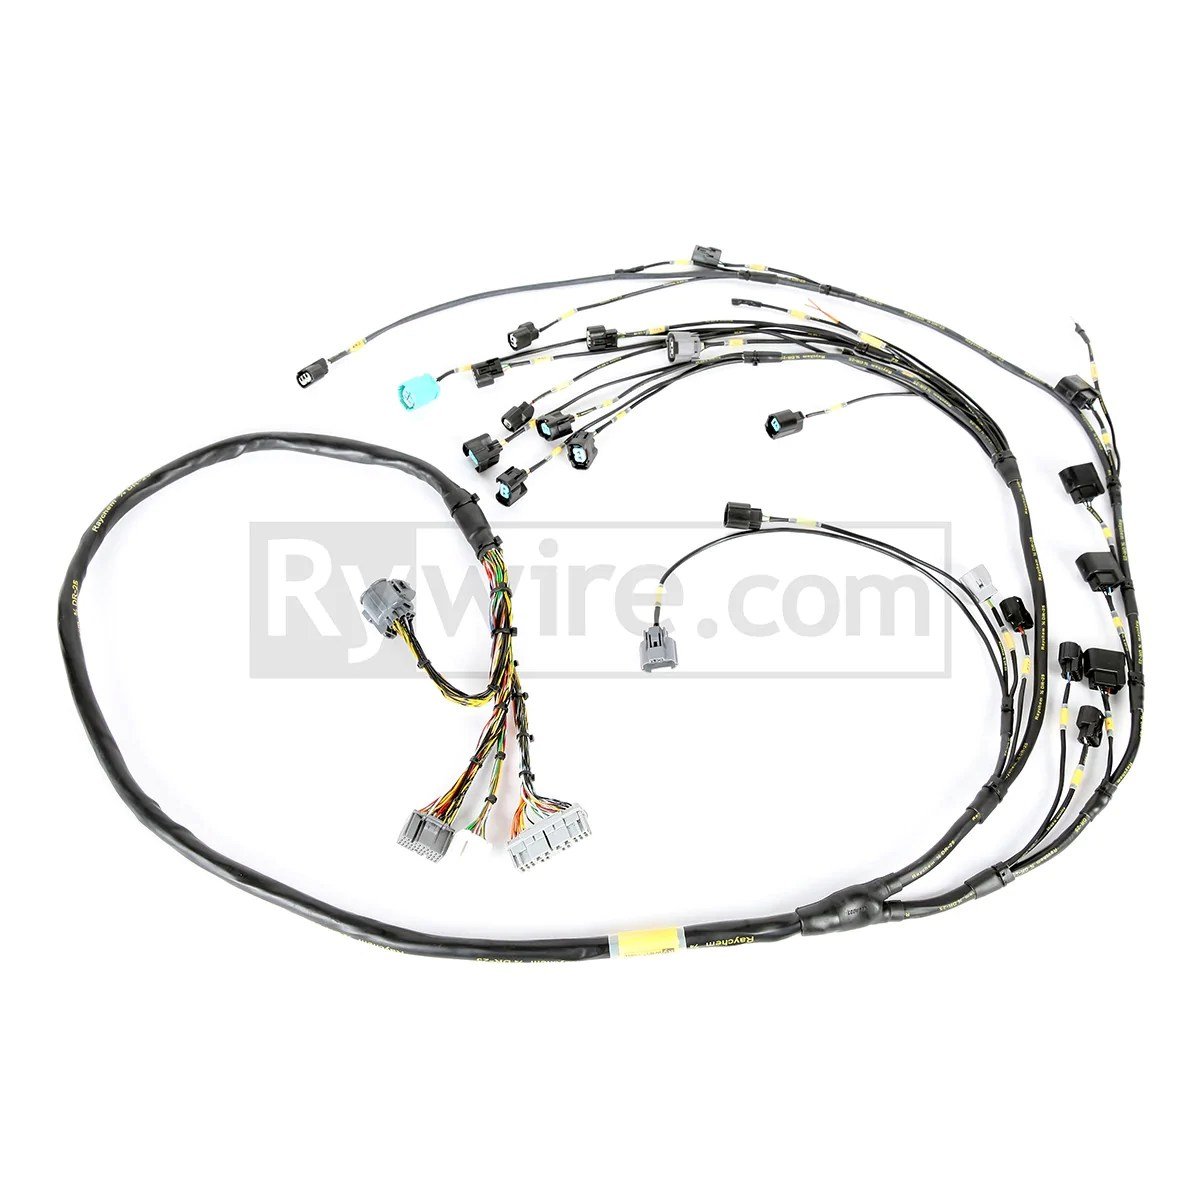 hight resolution of rywire mil spec tucked k series harness ver 2 with quick disconnect